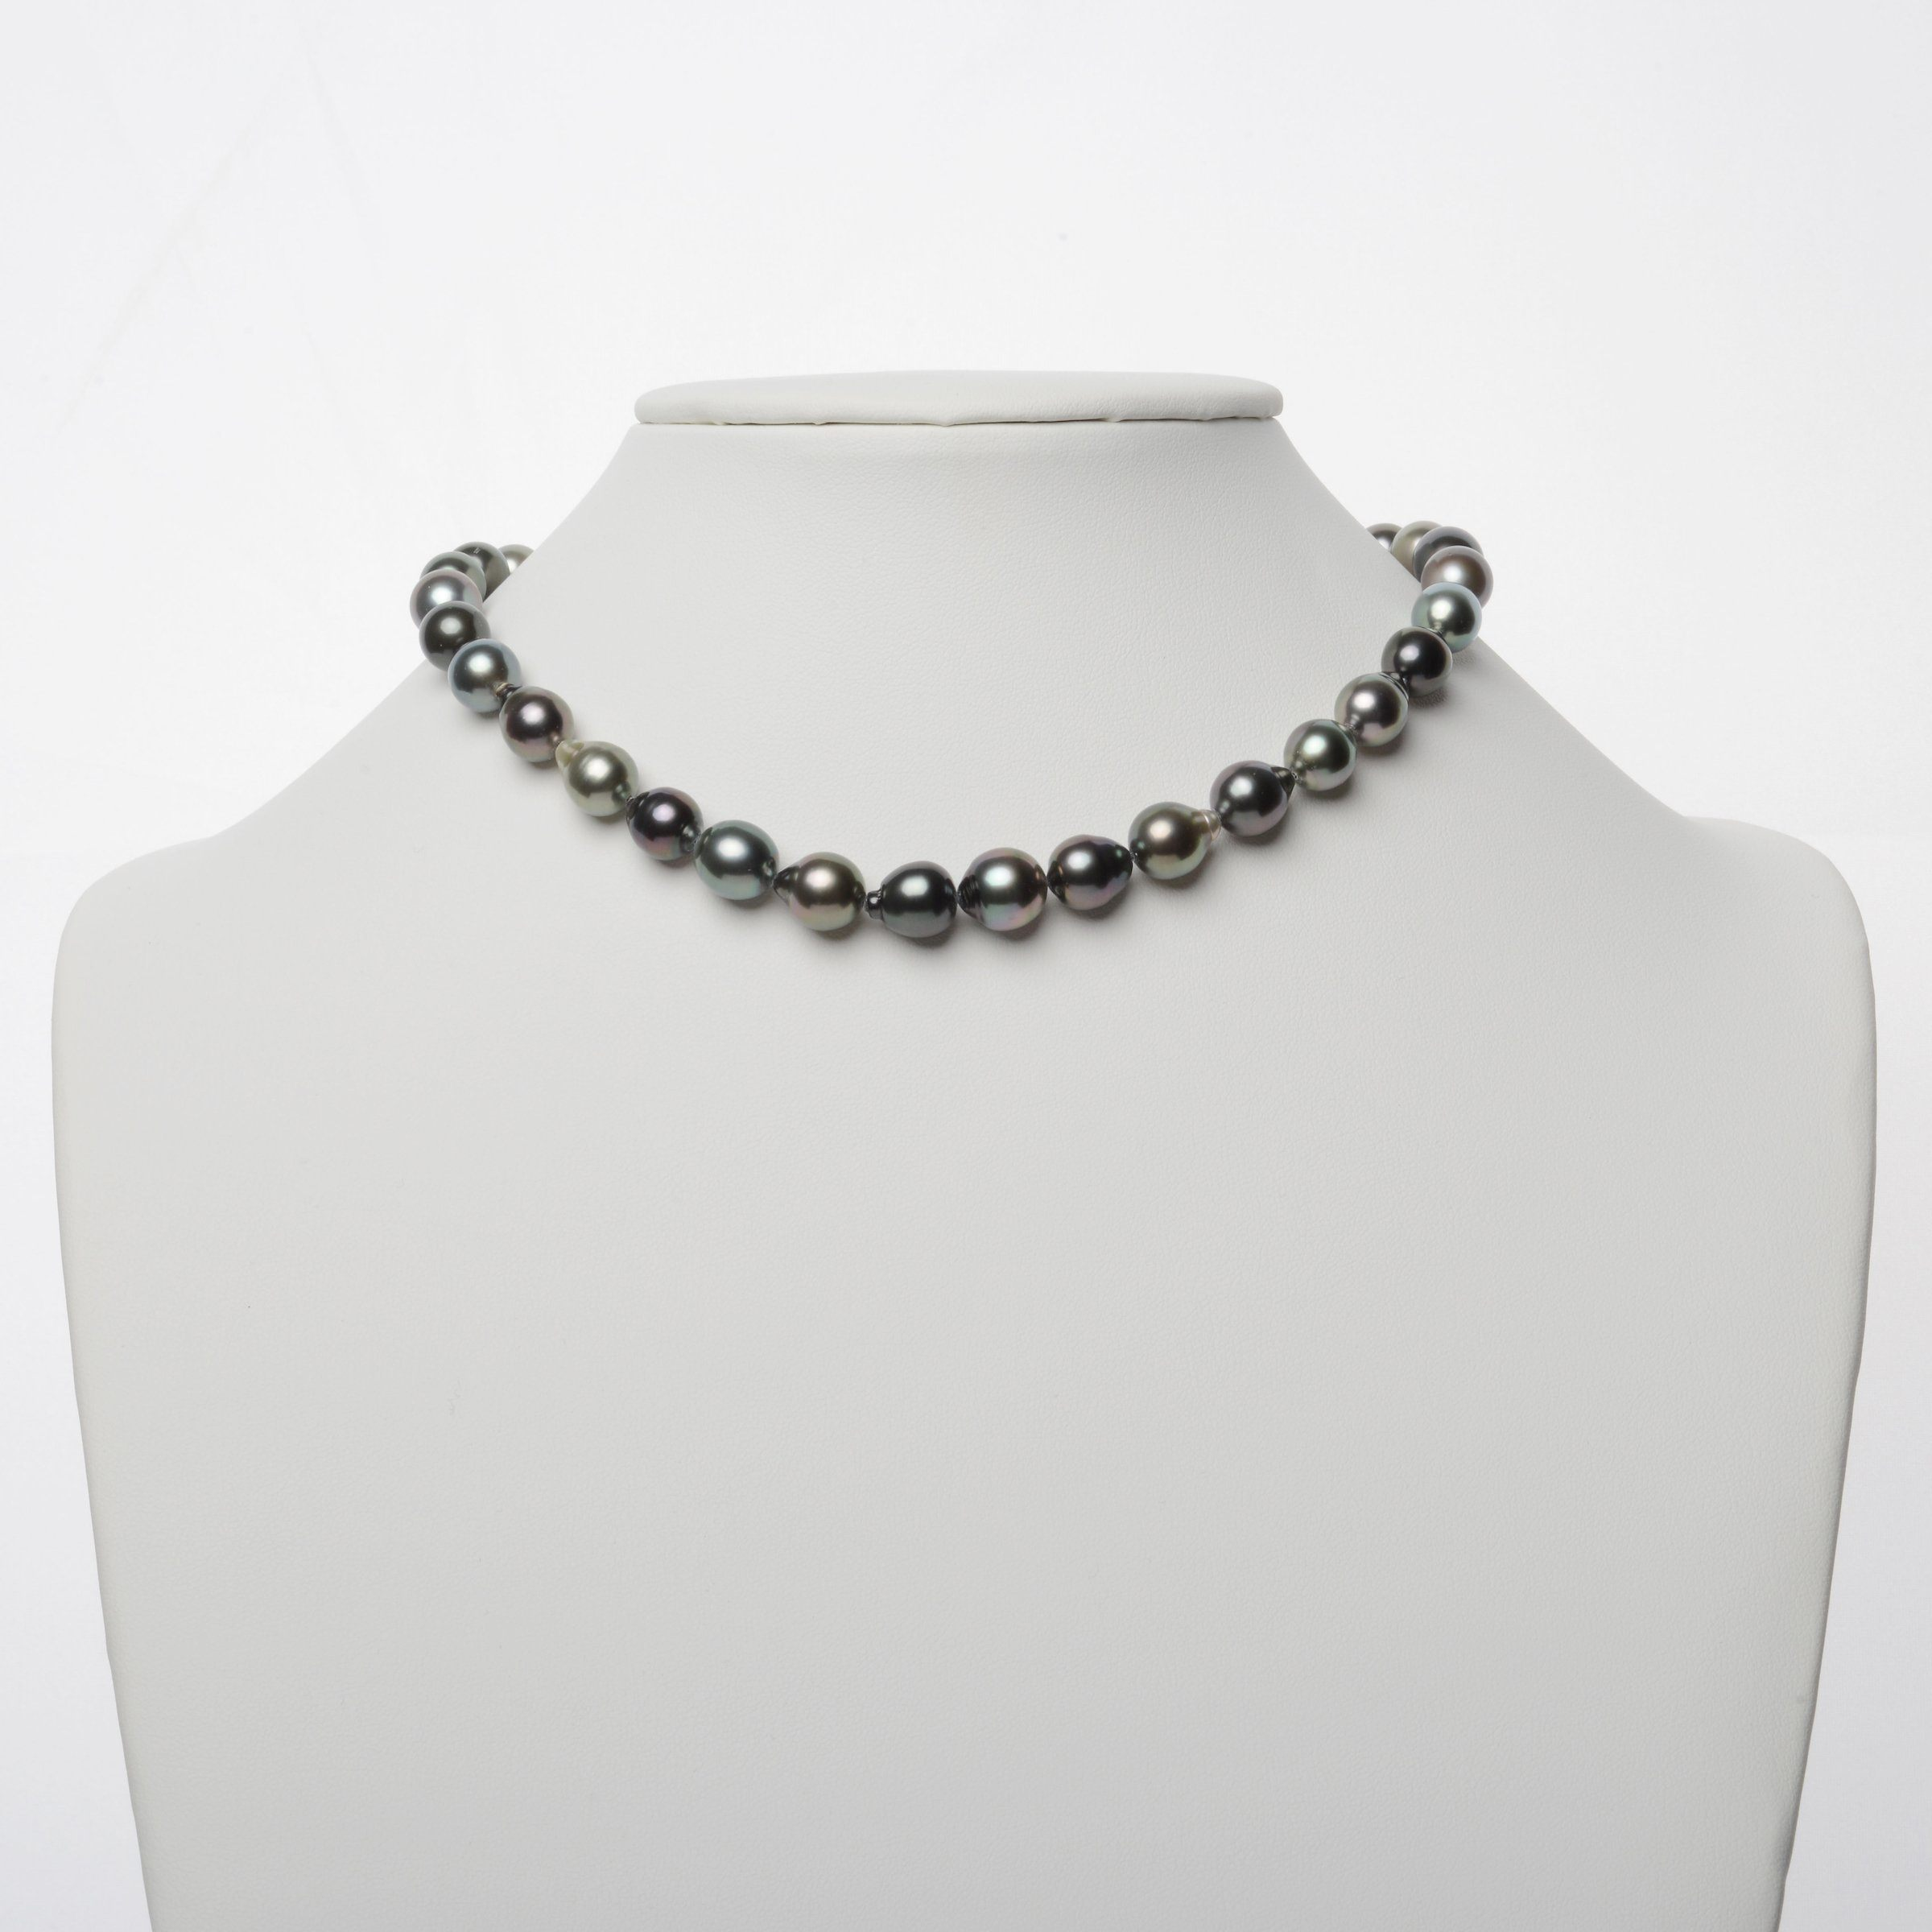 8.5-10.9 mm AAA Tahitian Drop Pearl Necklace